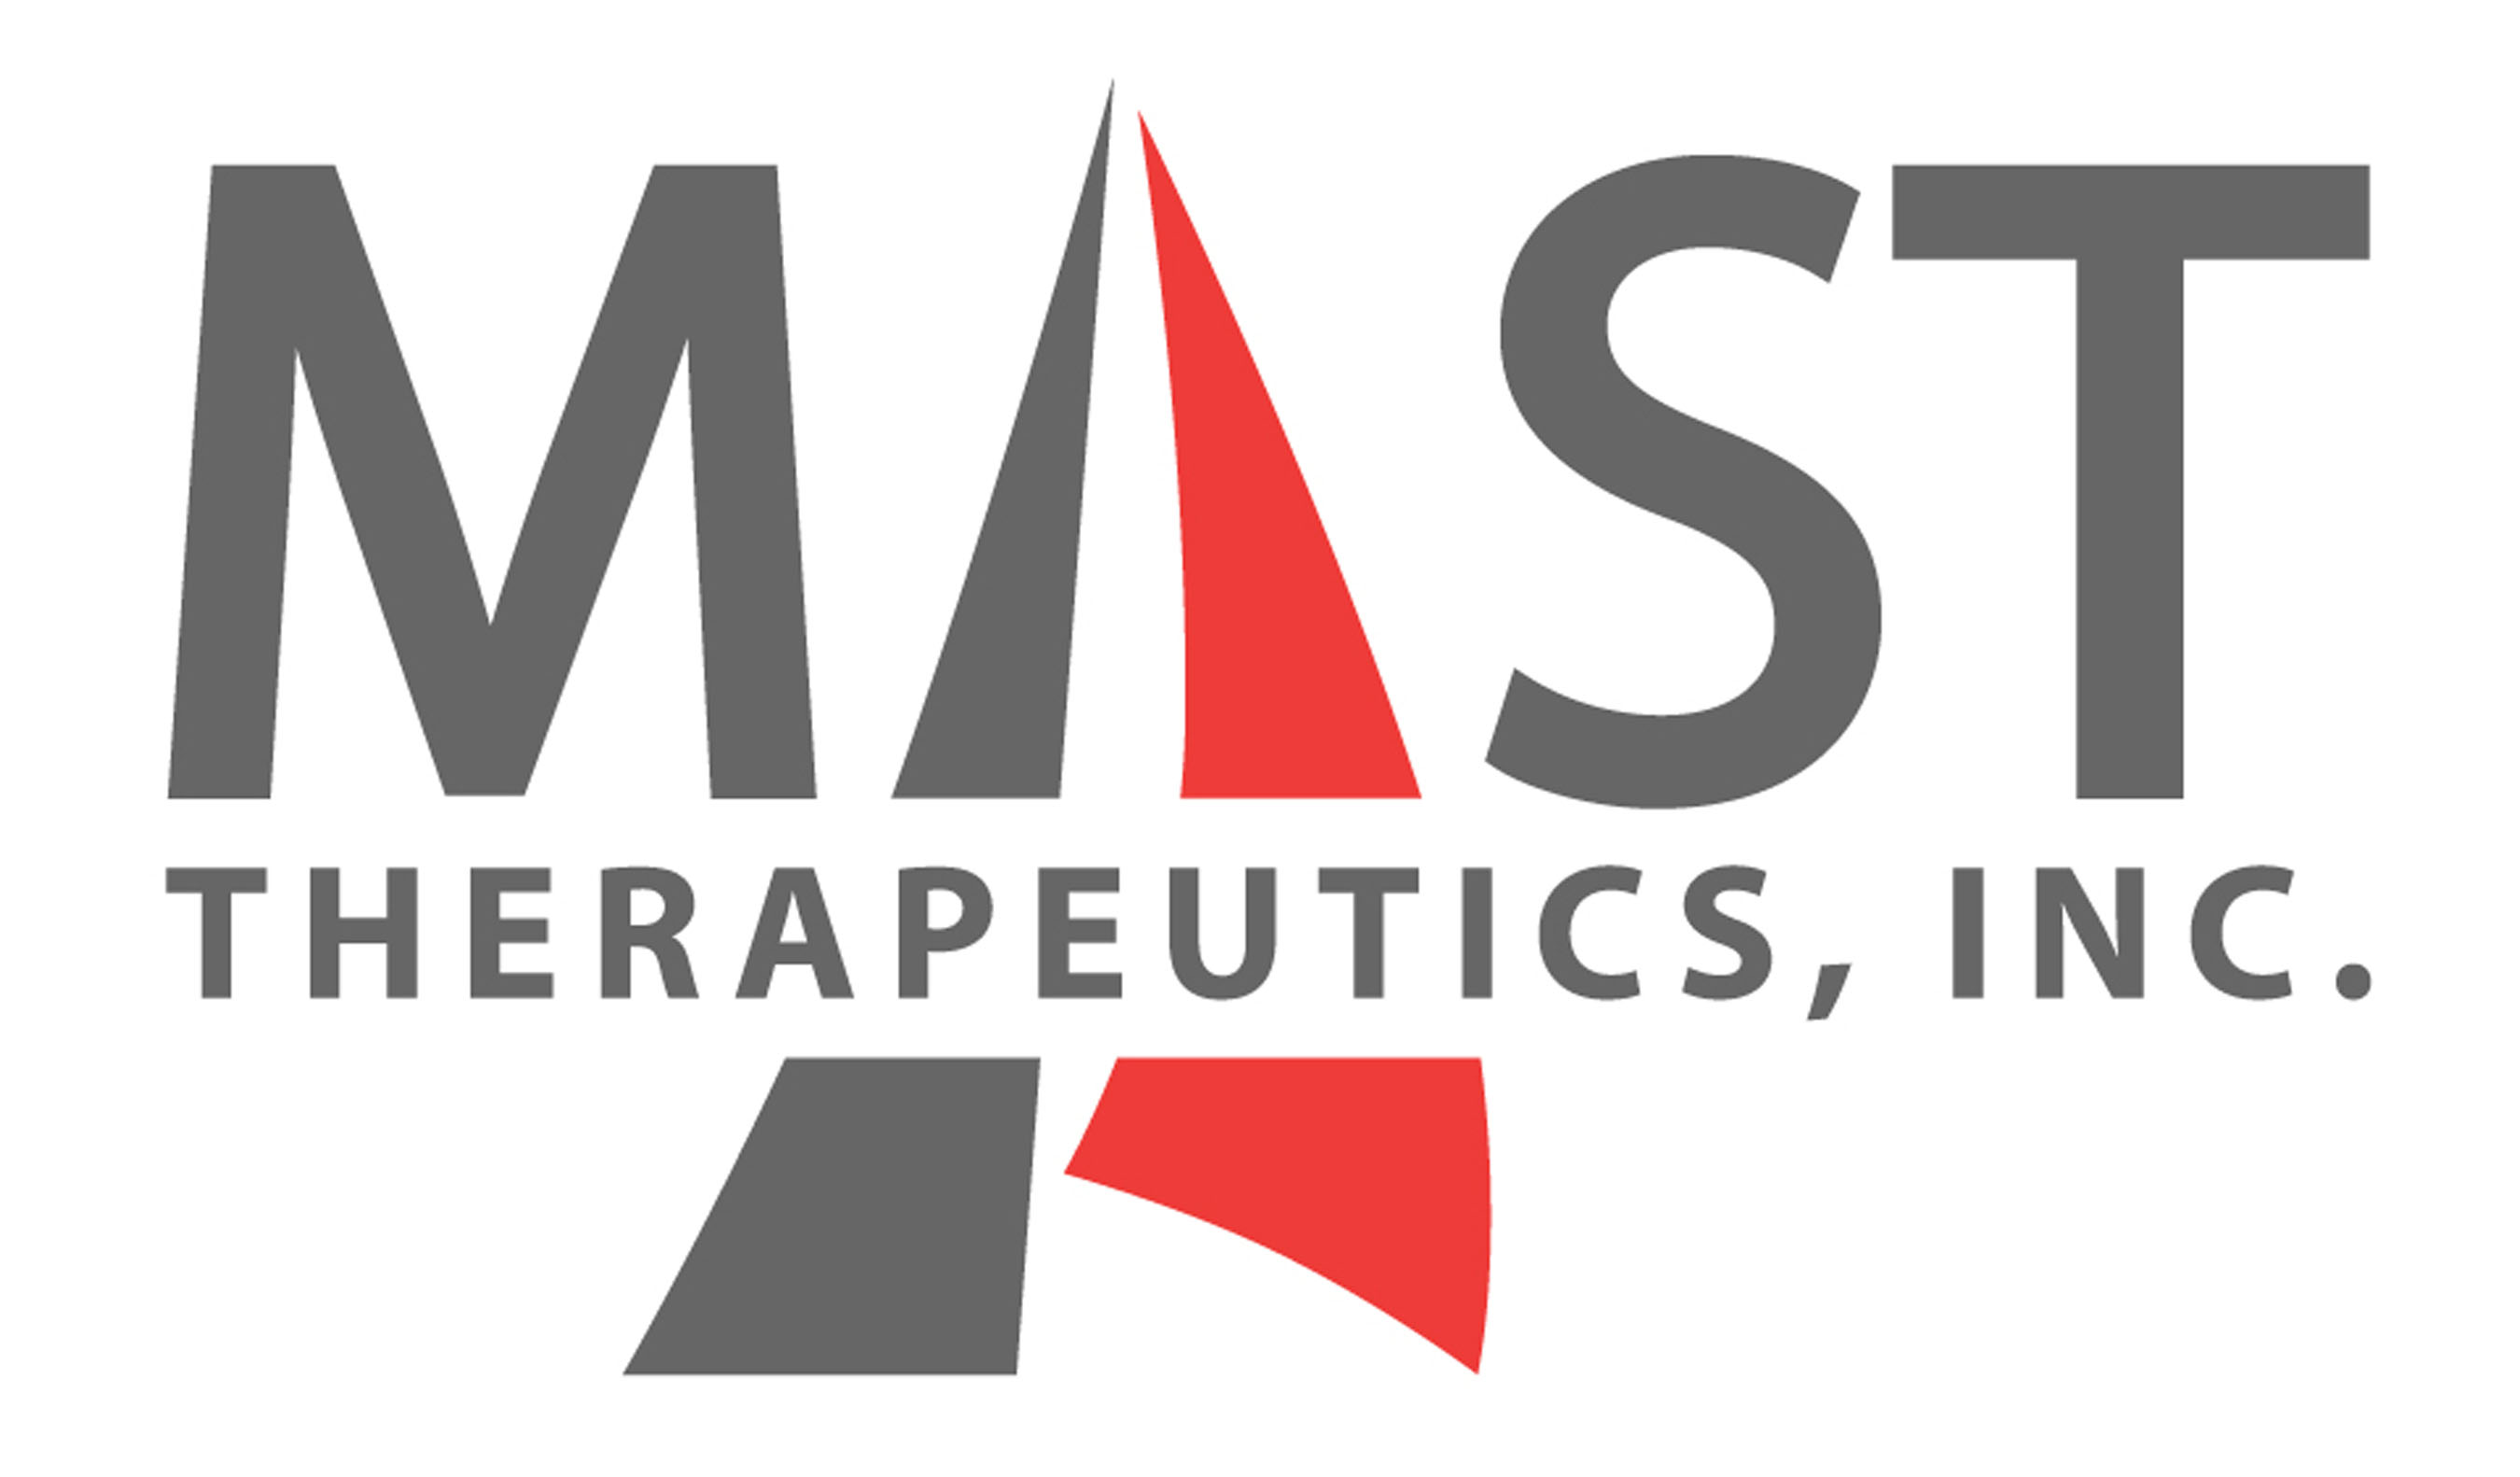 roth-capital-reiterates-8220buy8221-rating-for-mast-therapeutics-inc-mstx.jpg